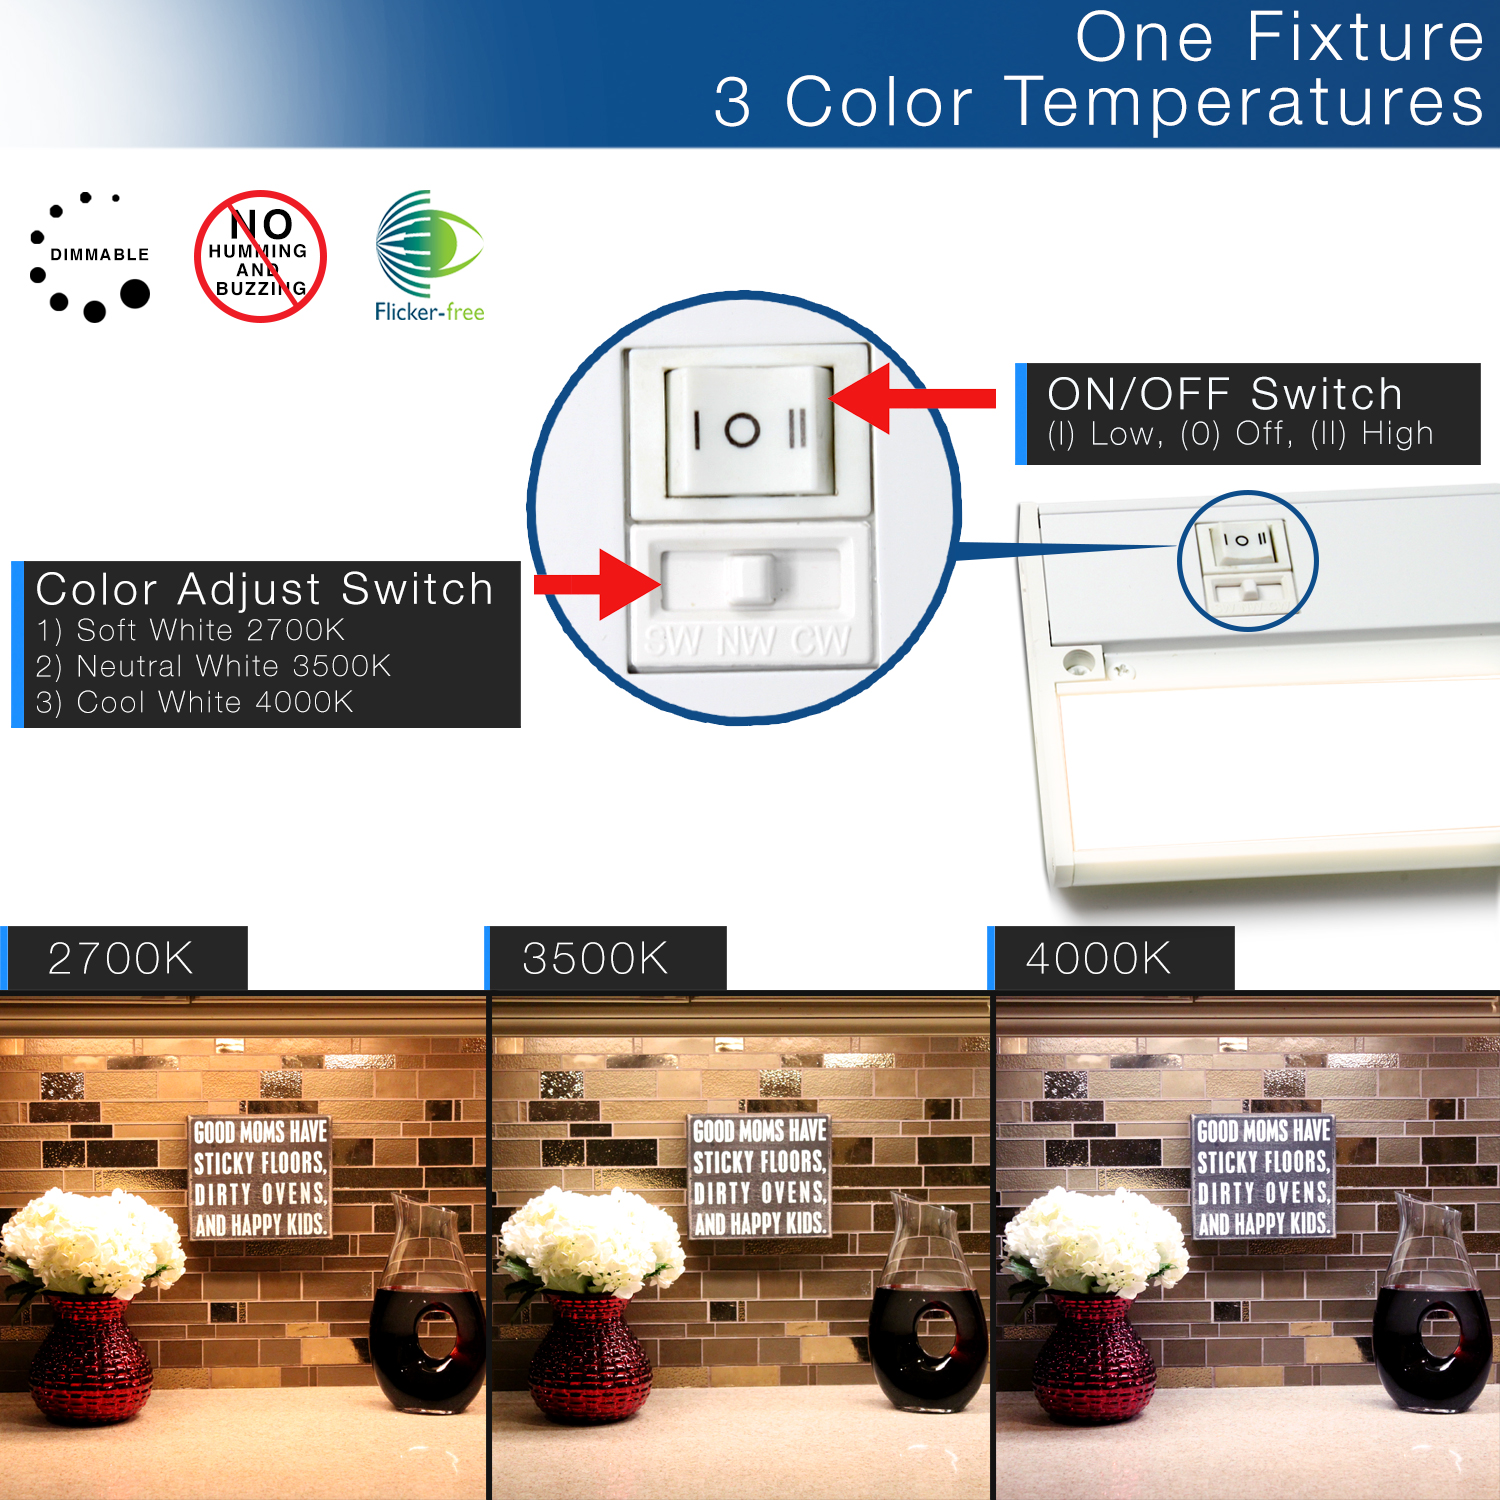 Uc3cct 32 Wh Led Under Cabinet Light Britelum 3 Way Switch Buzzing Category